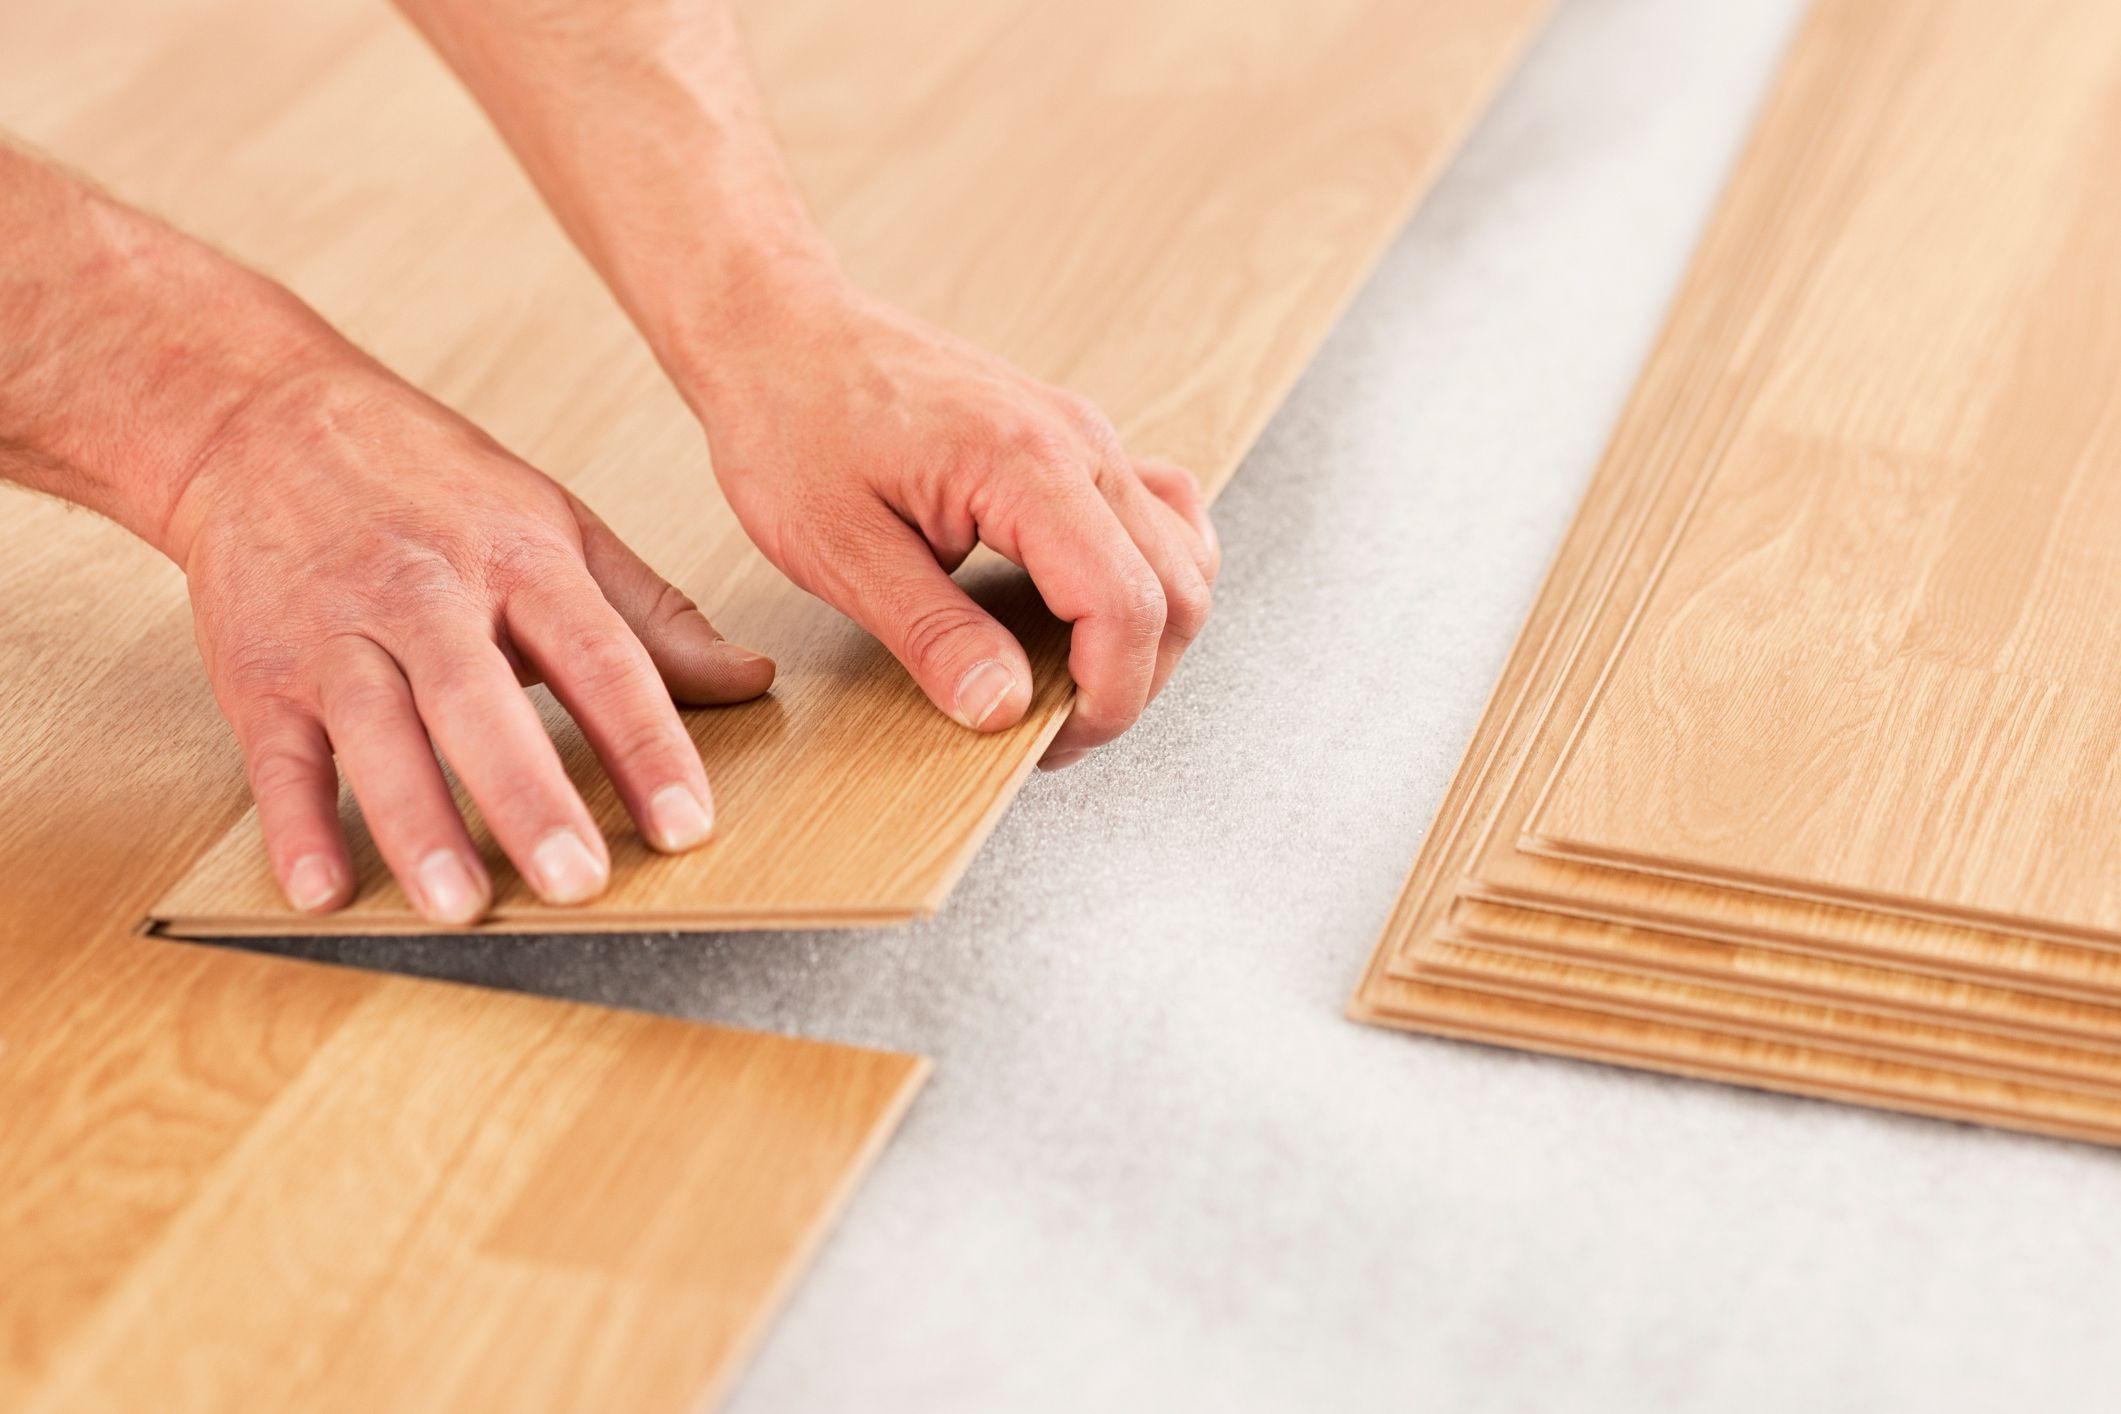 Cost to Install Hardwood Floors Yourself Of Laminate Underlayment Pros and Cons In Laminate Floor Install Gettyimages 154961561 588816495f9b58bdb3da1a02